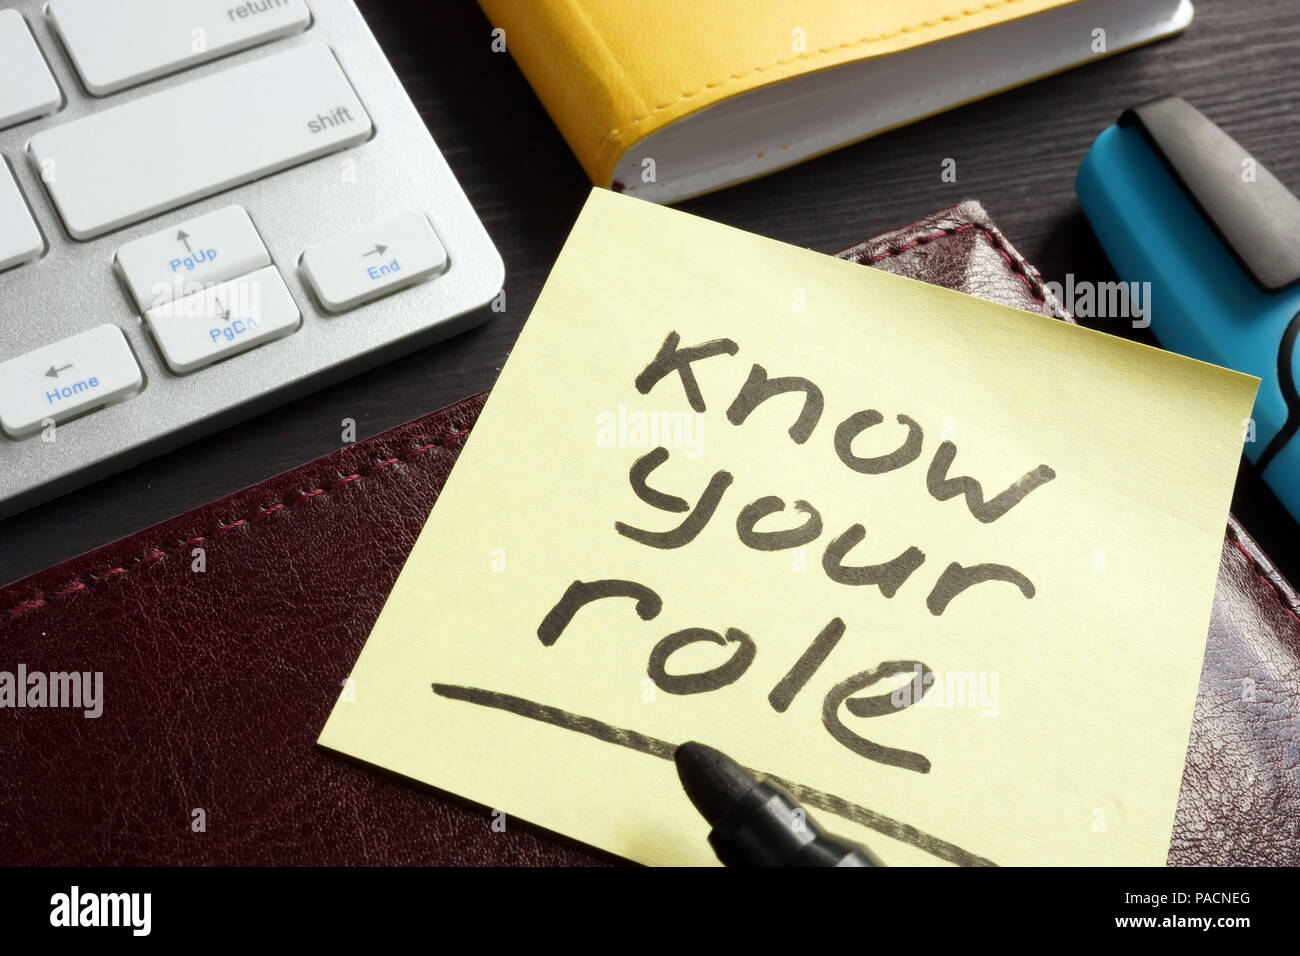 Know your role written on a memo stick. Inspiration. - Stock Image